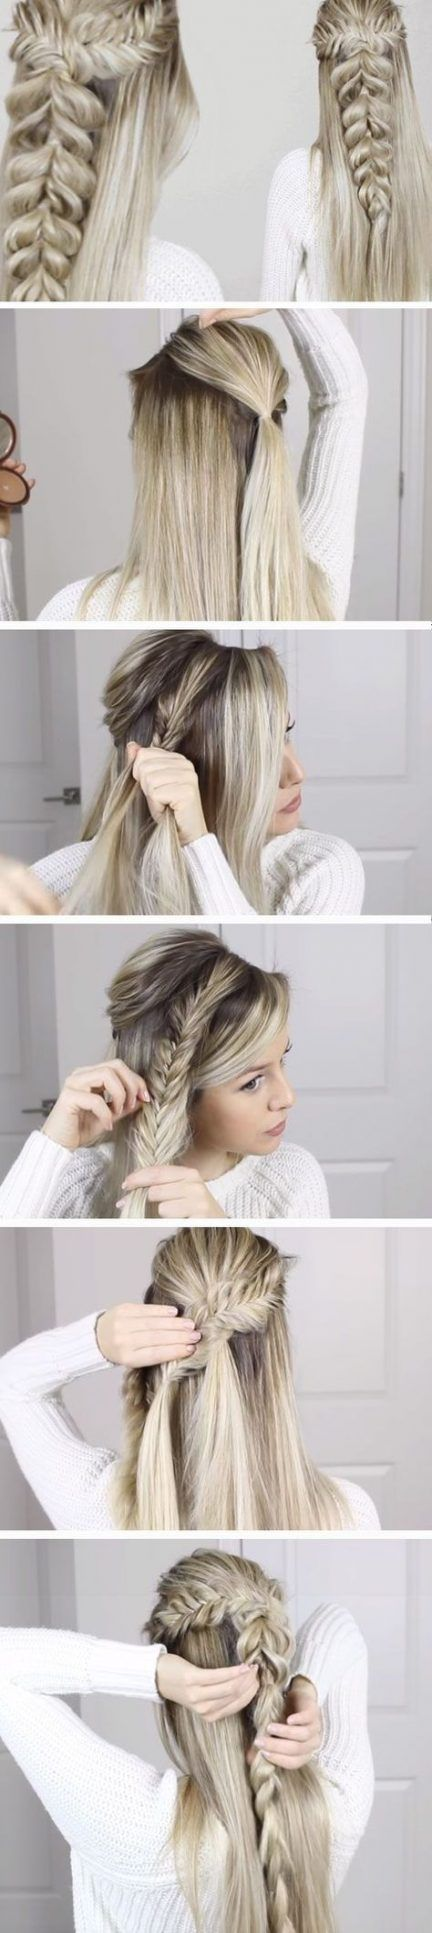 #Curls #Easy Hairstyles straight #Hairstyles #Ideas #Straight #Updo